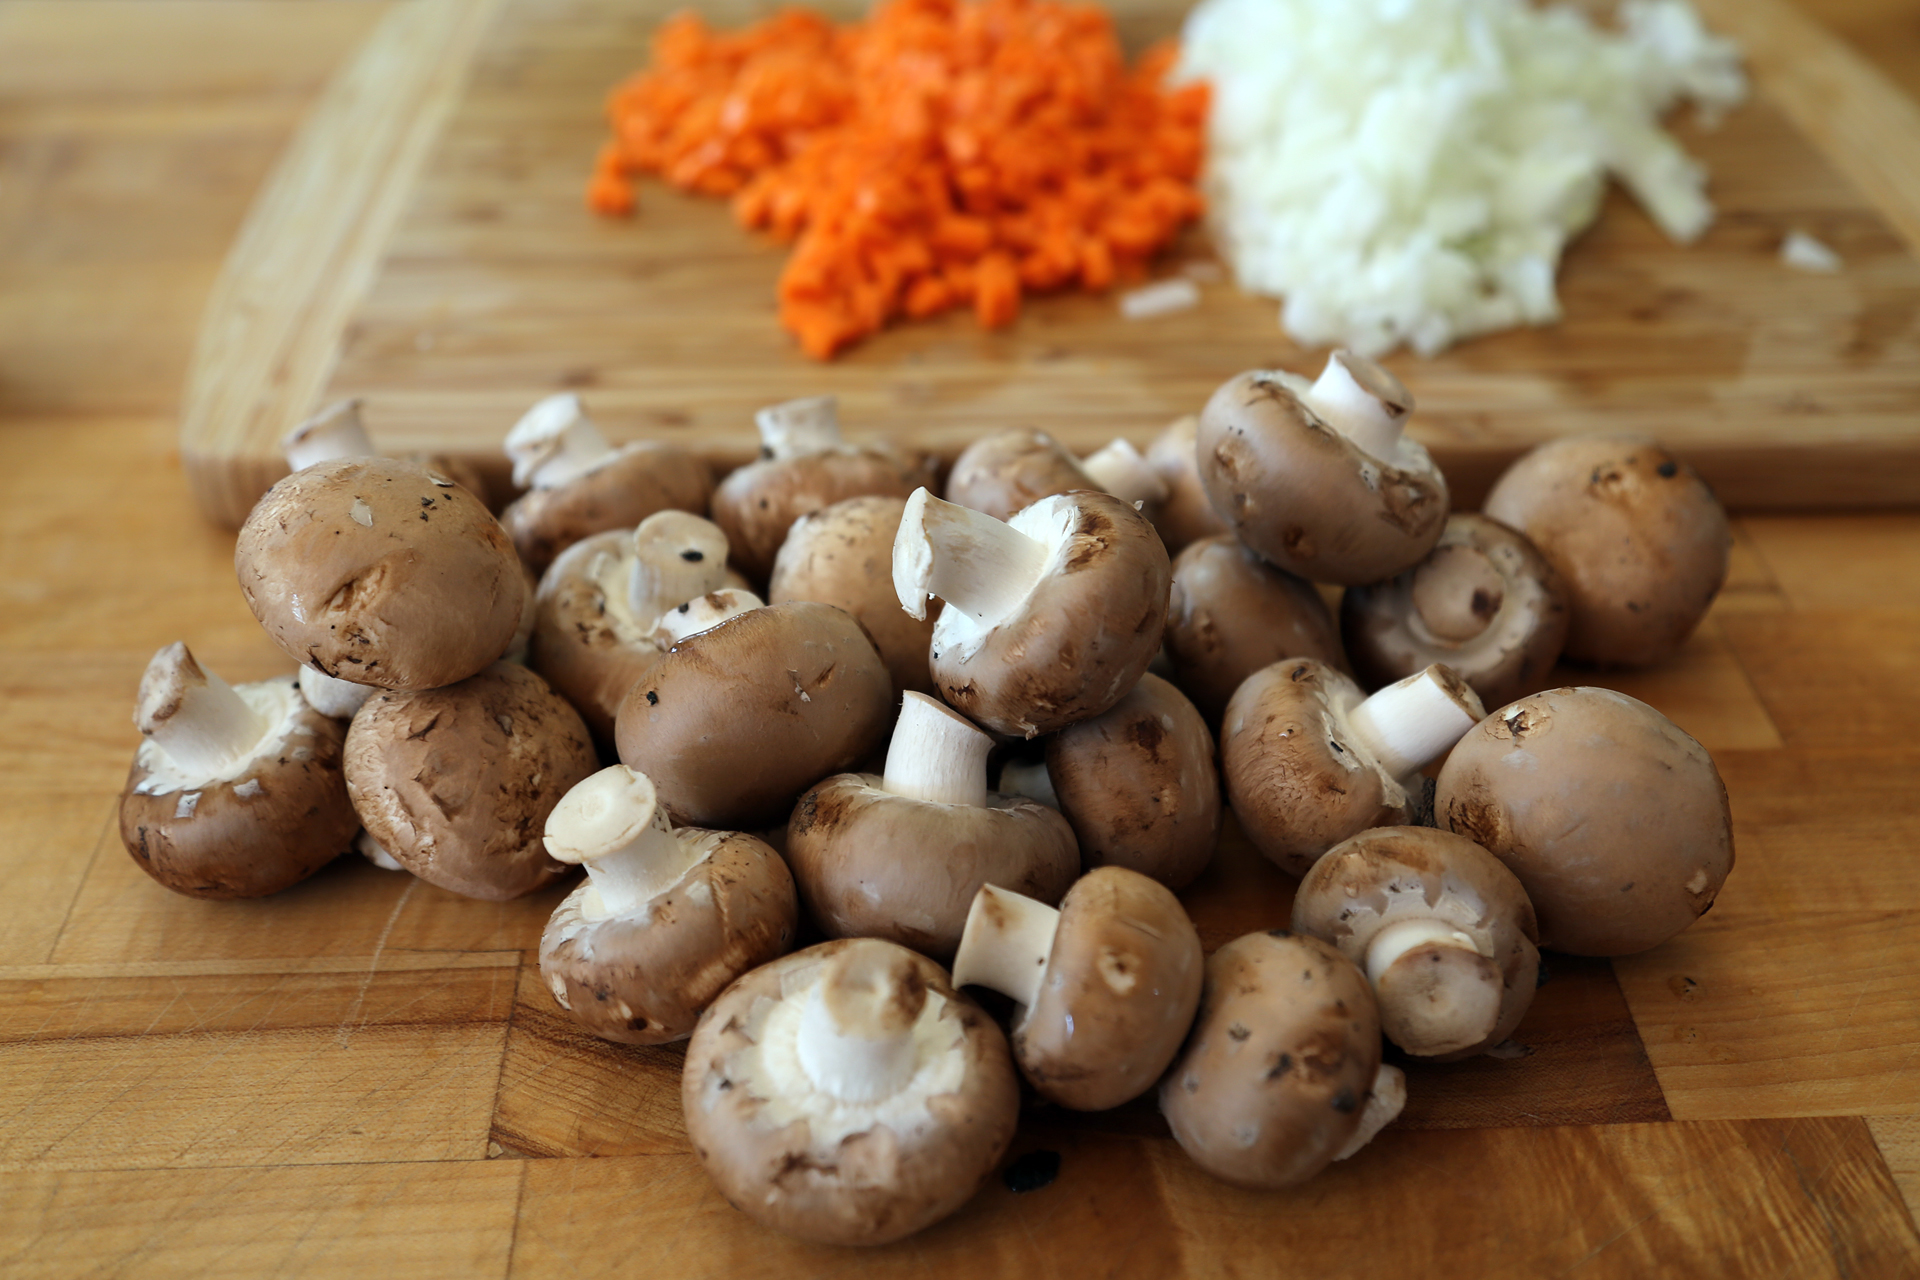 Mushroom and prepped carrots and onions